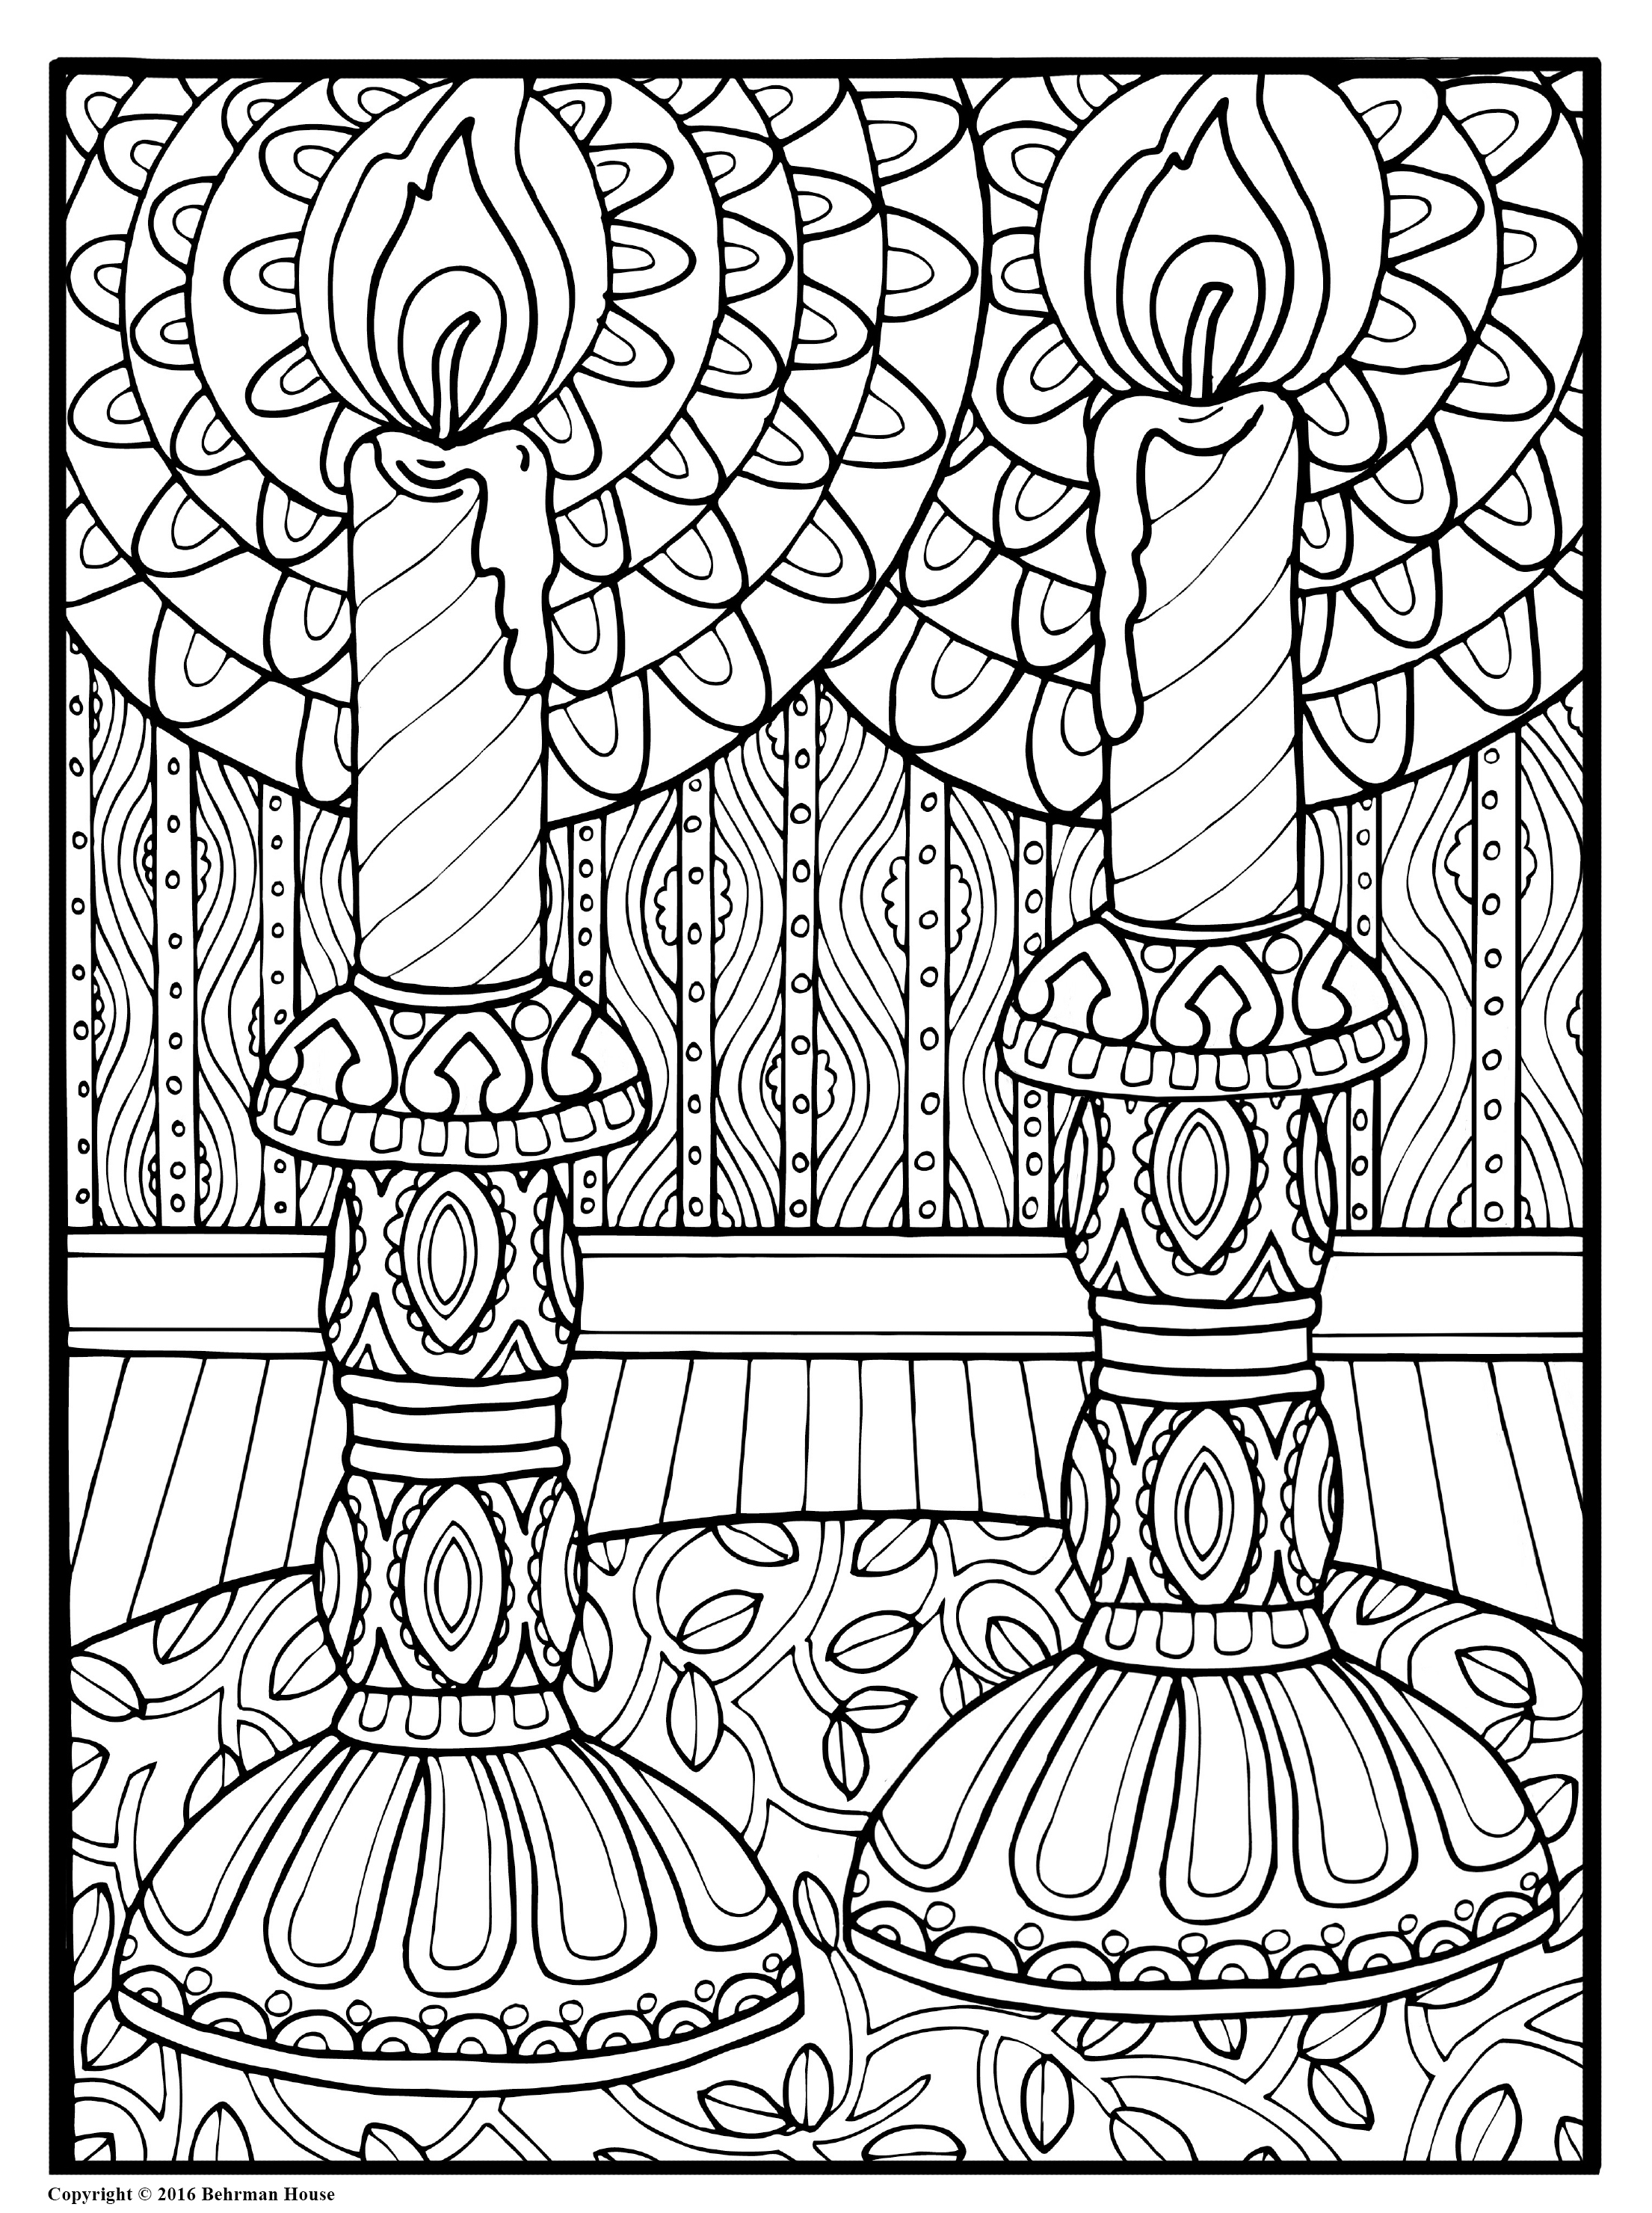 2210x2960 Improved Jewish Colouring Pages Coloring For Adults Gallery Kids